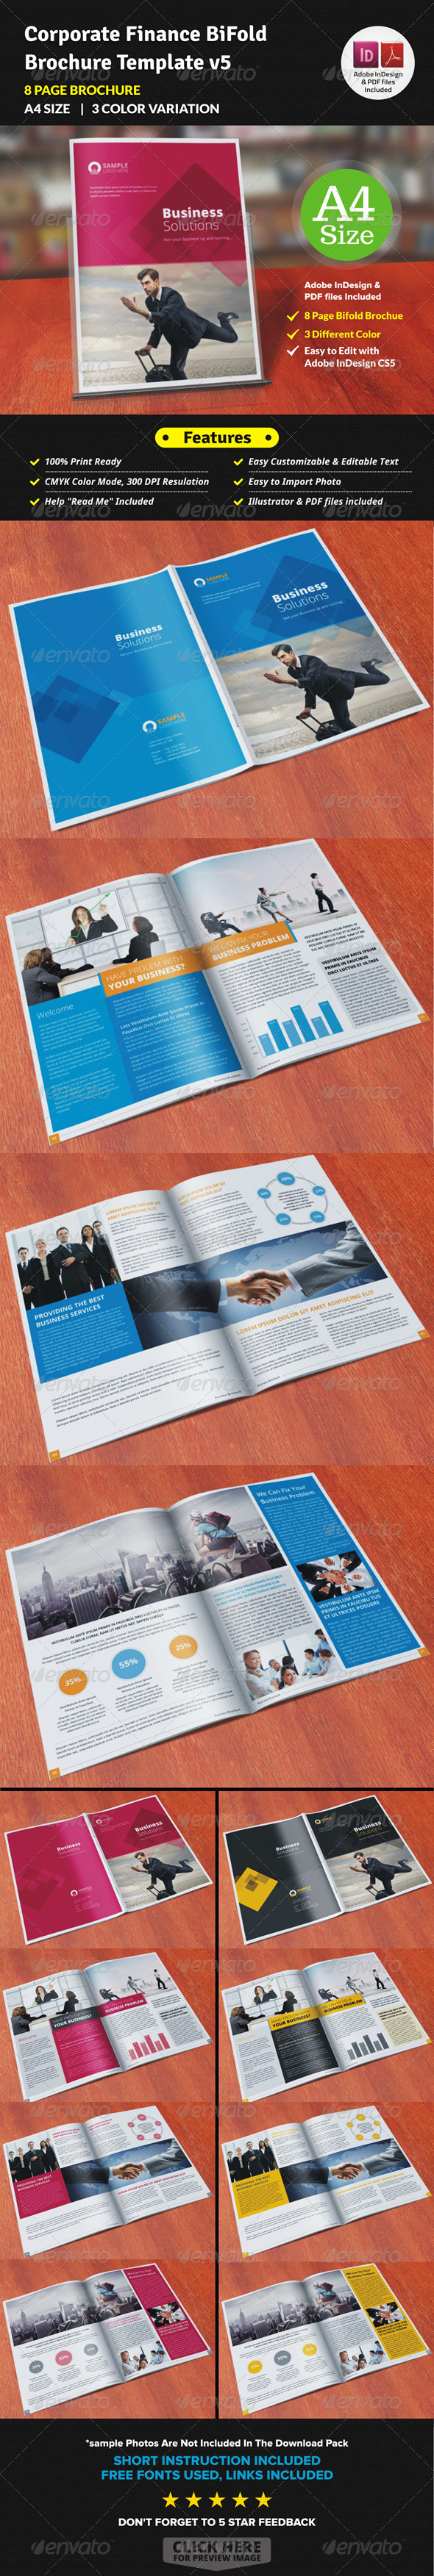 GraphicRiver Corporate Finance Bifold Brochure Template v5 7764473